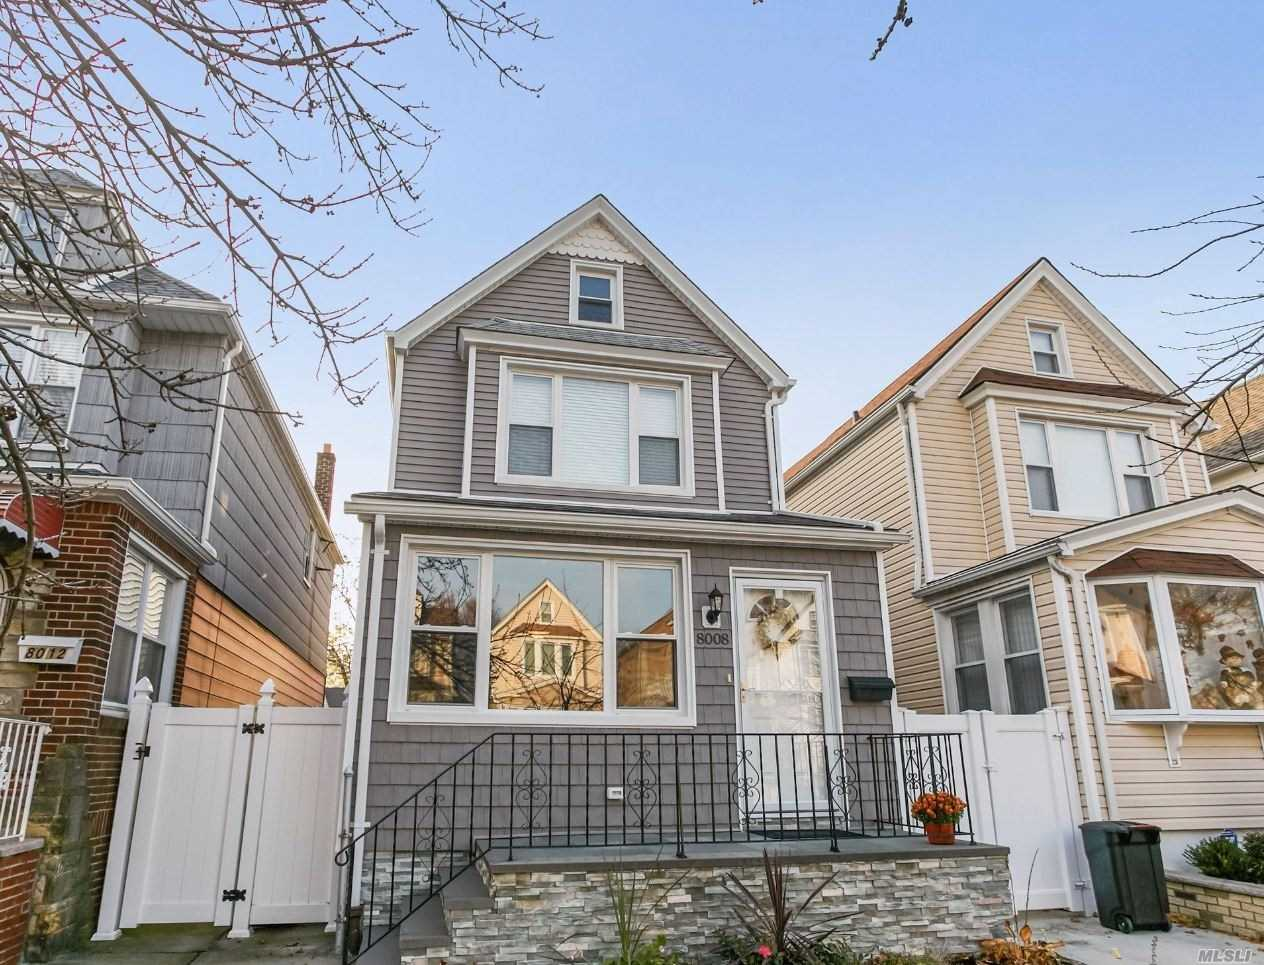 Legal Fully Detatched 2 Family Being Used As A 1 , Parking For 1 Car, Large Private Yard , Finished Basement Hardwood Floors, 3 Ac Split Units, Hot Water Tank , Siding, And Windows All Done In 2016, Nice Tree Lined Street